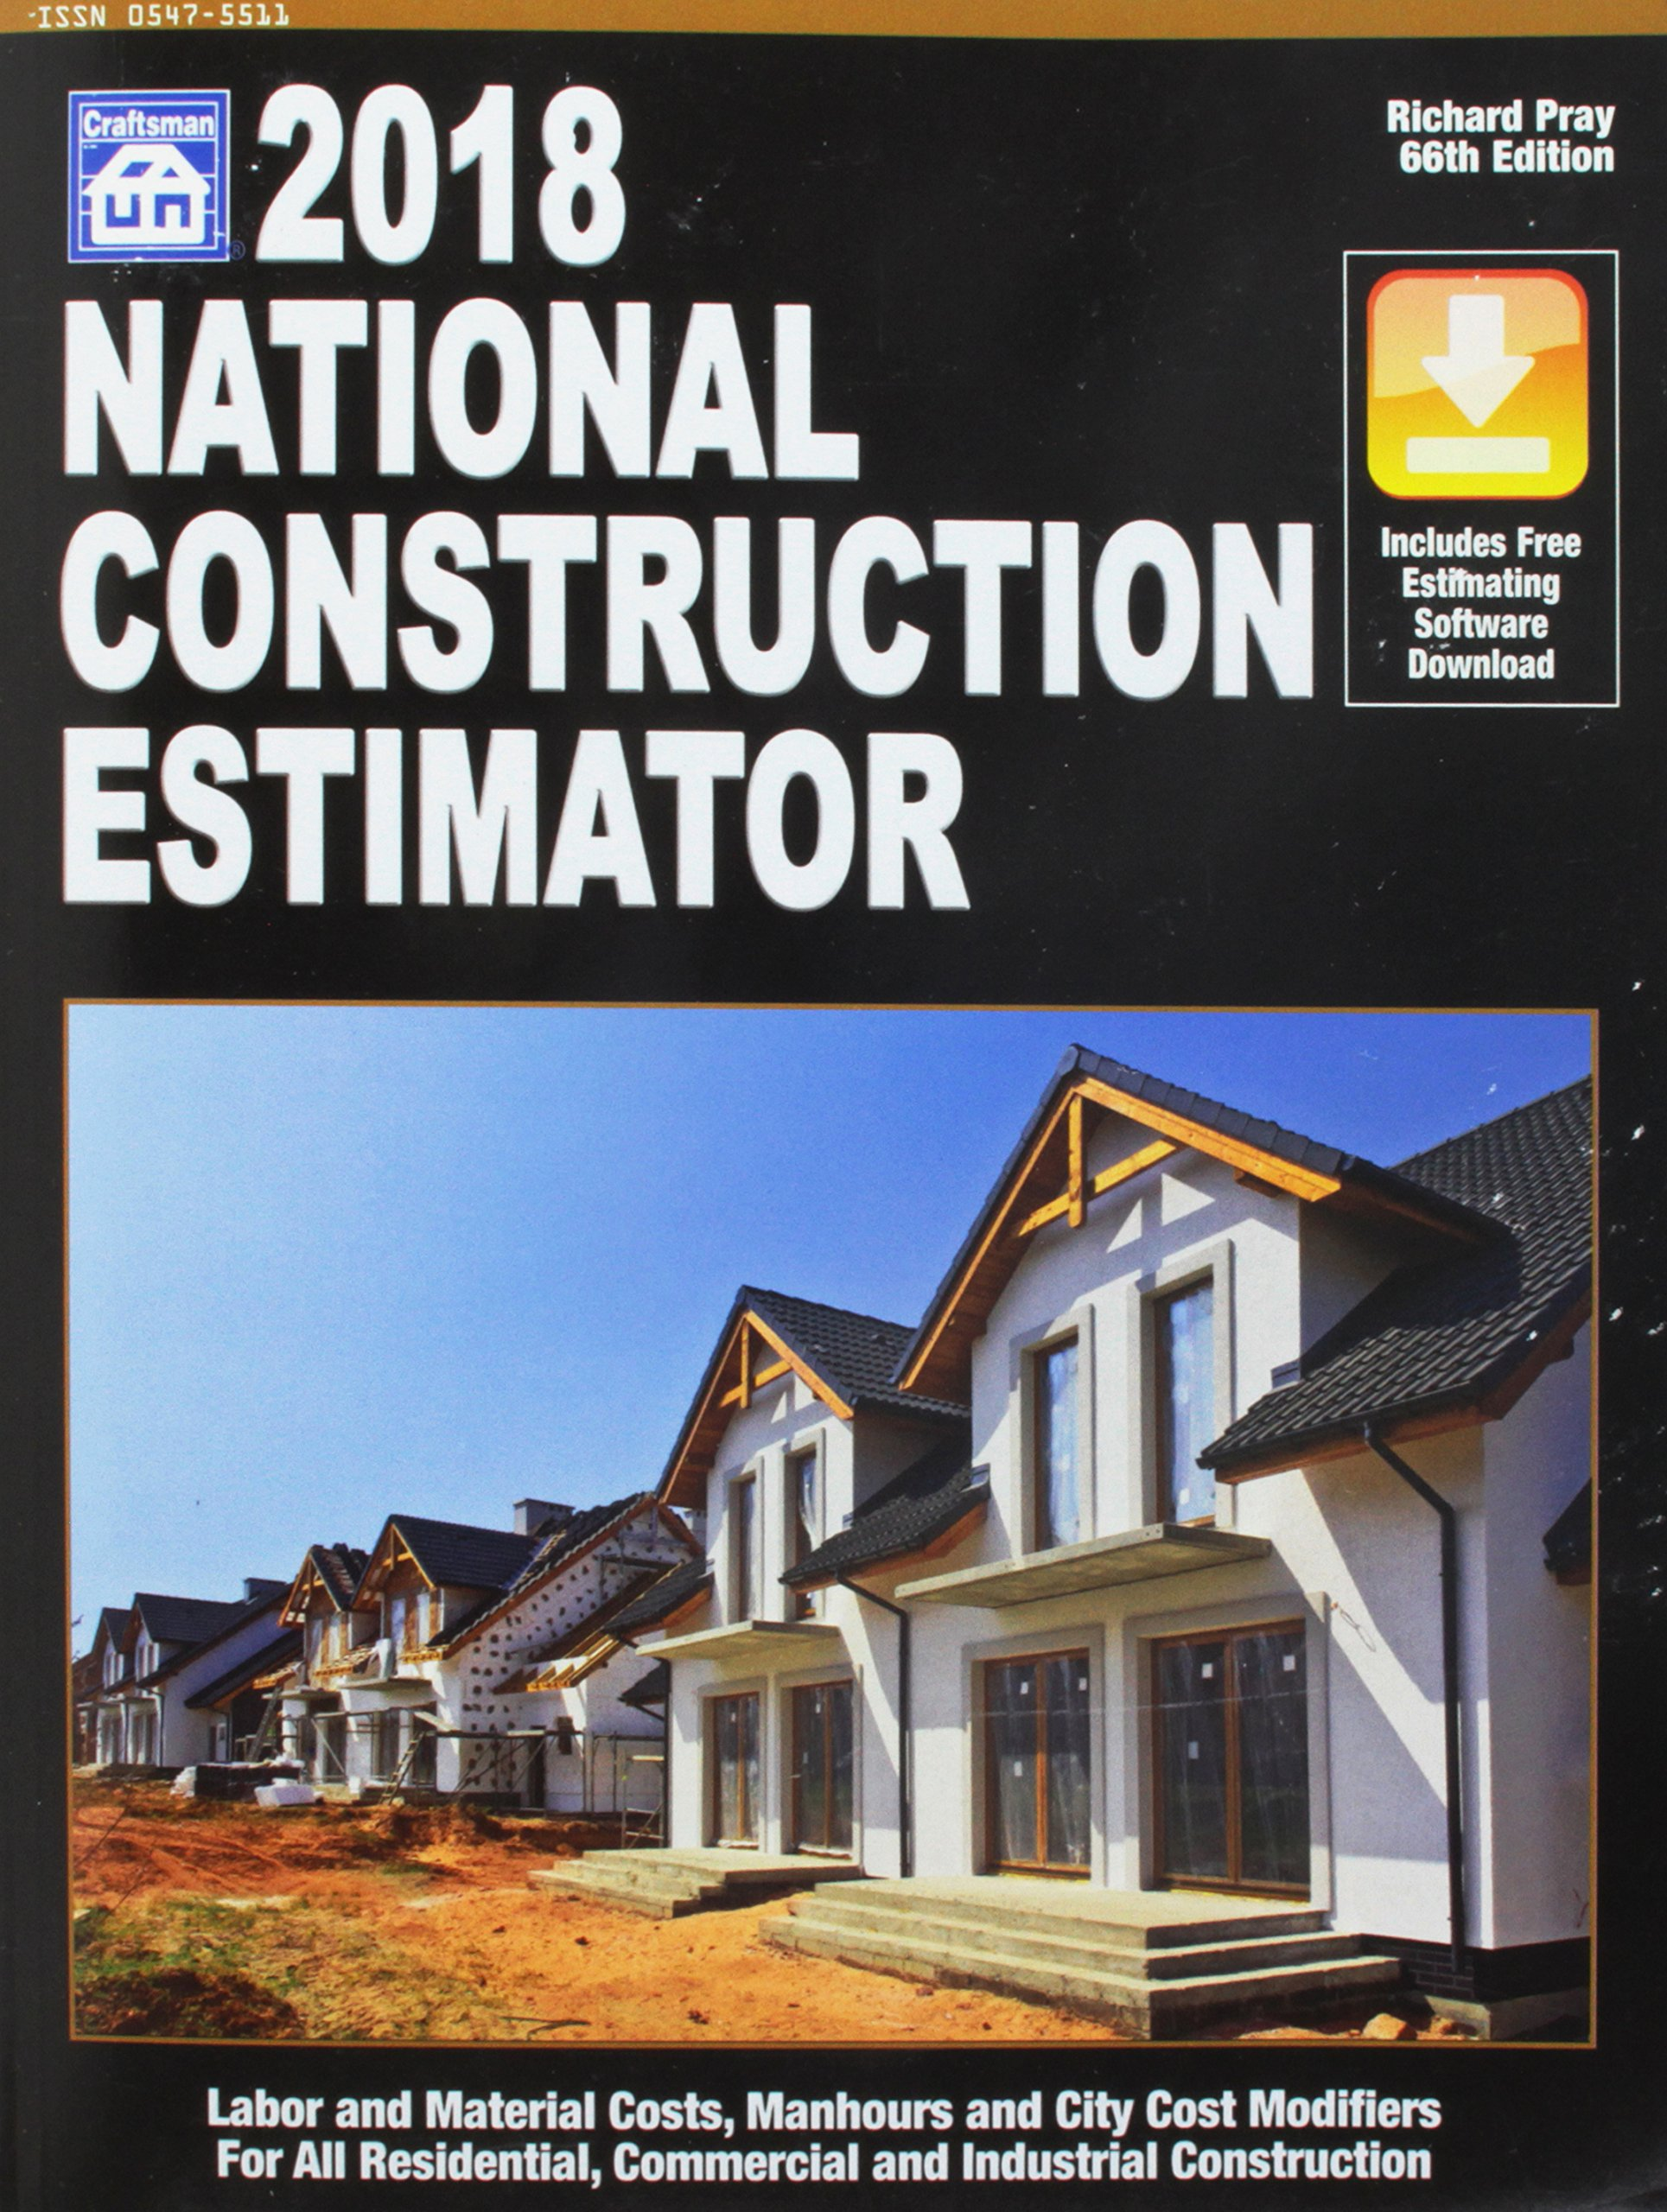 National Construction Estimator 2018: Includes Free Estimating Software Download